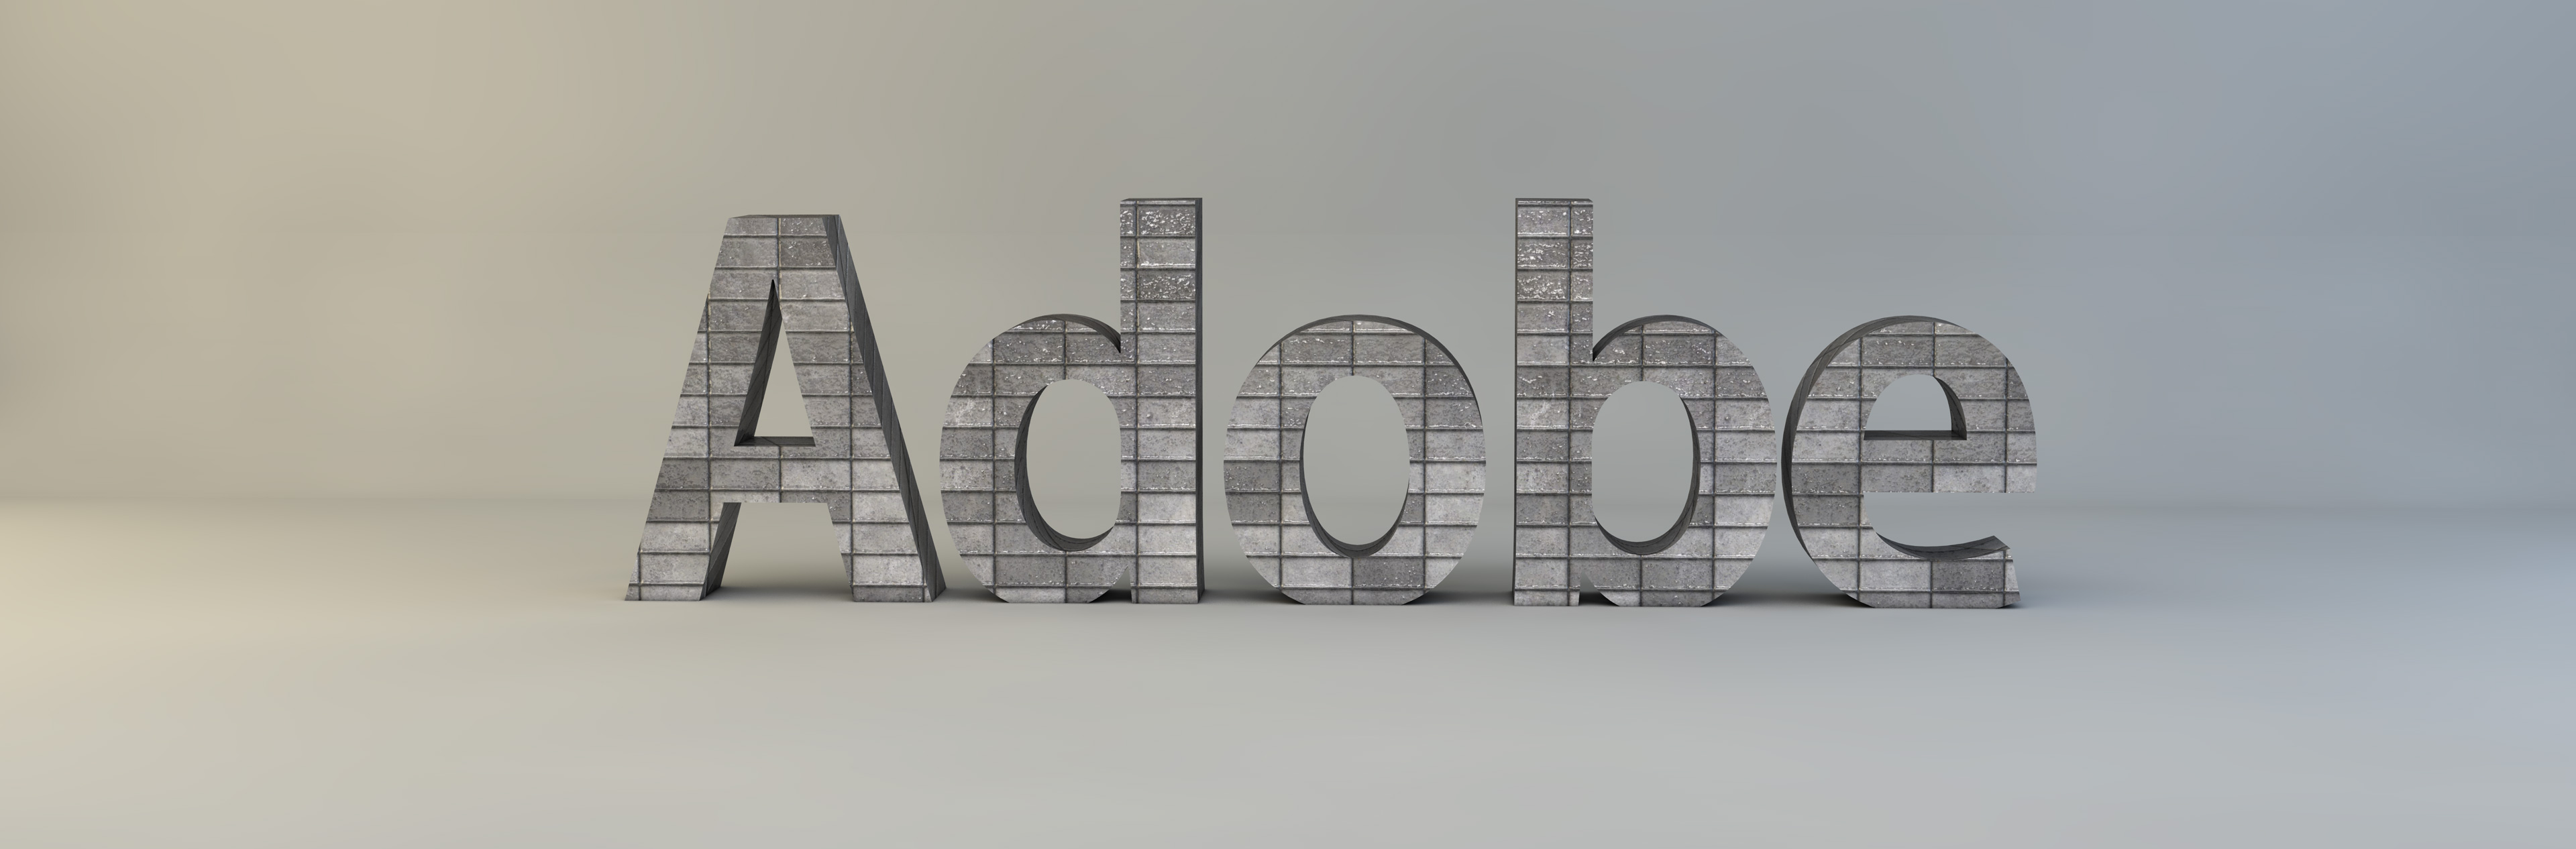 C4D 3D Text/Logo Studio Background Template (Download)